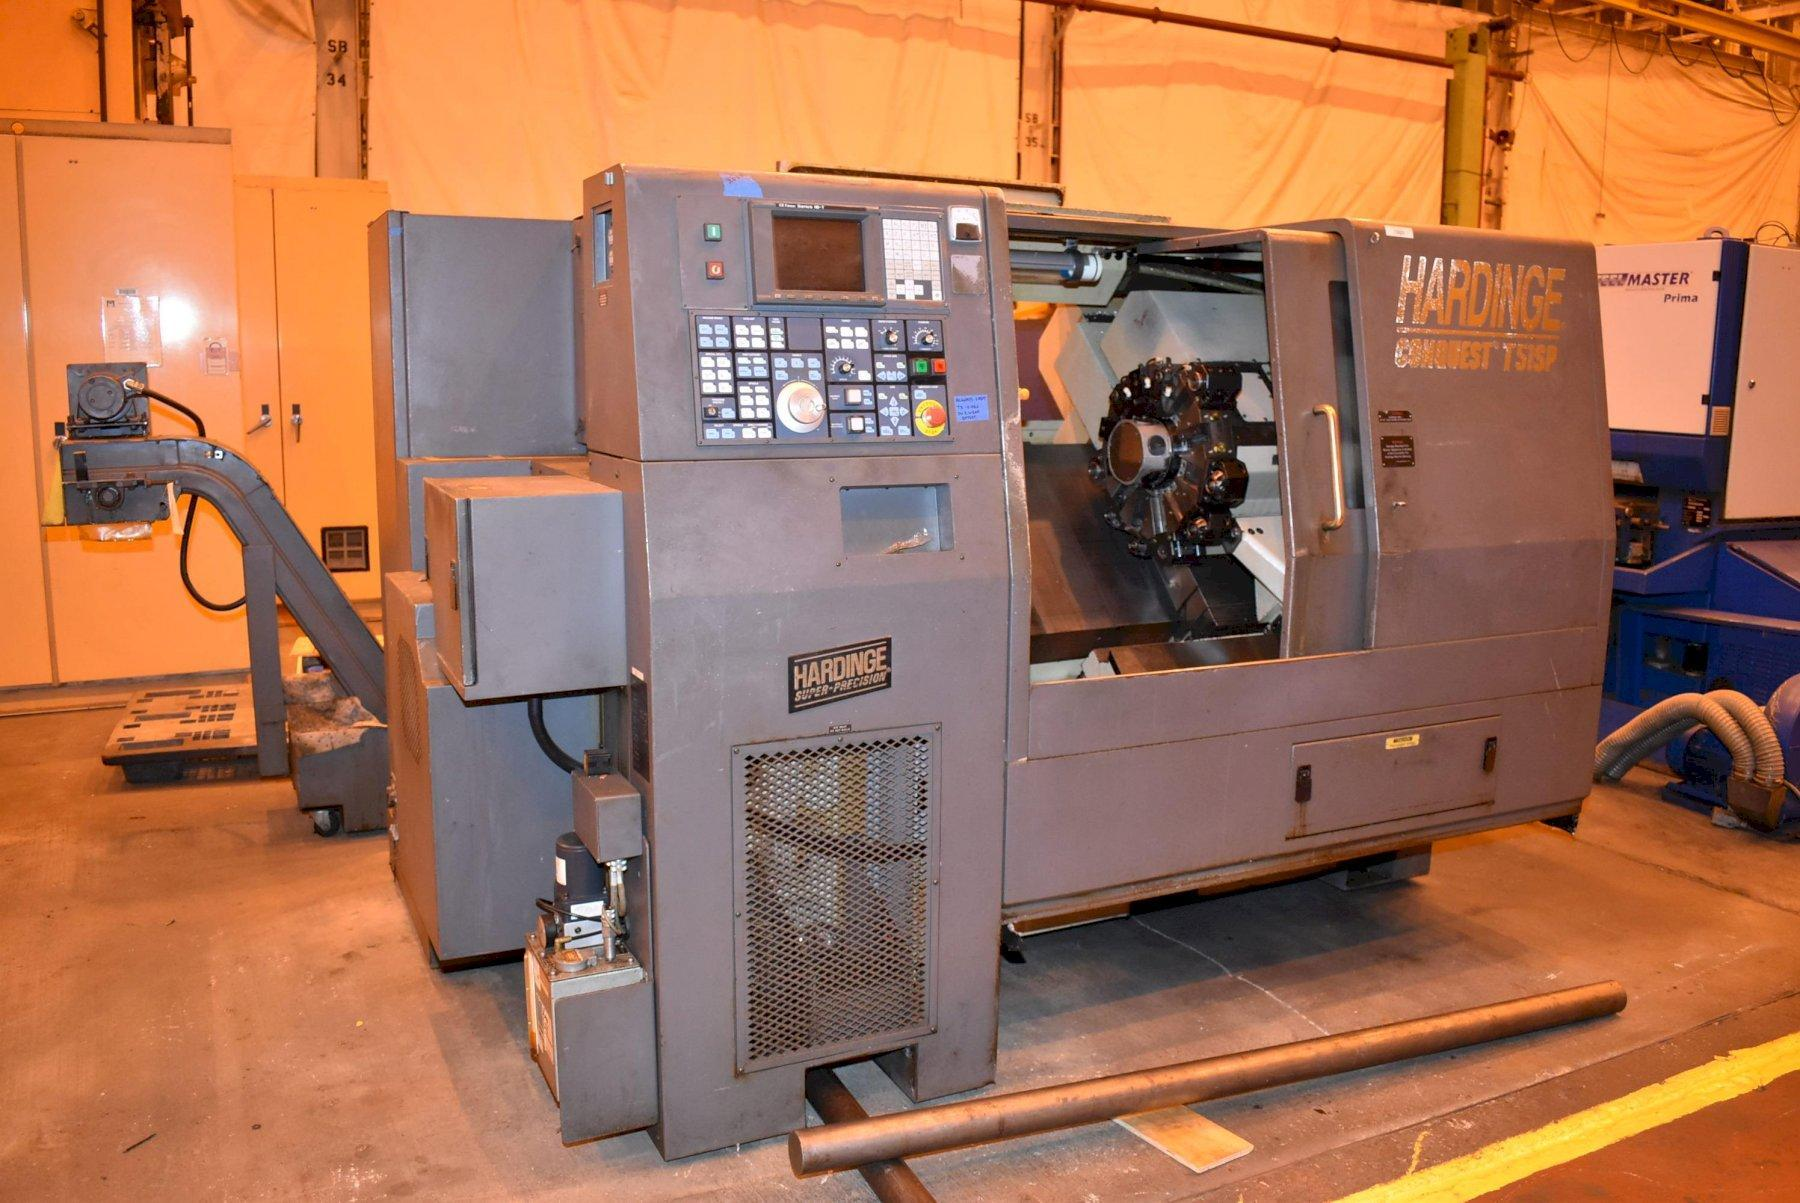 Hardinge Conquest T51SP CNC Turning Center with Milling